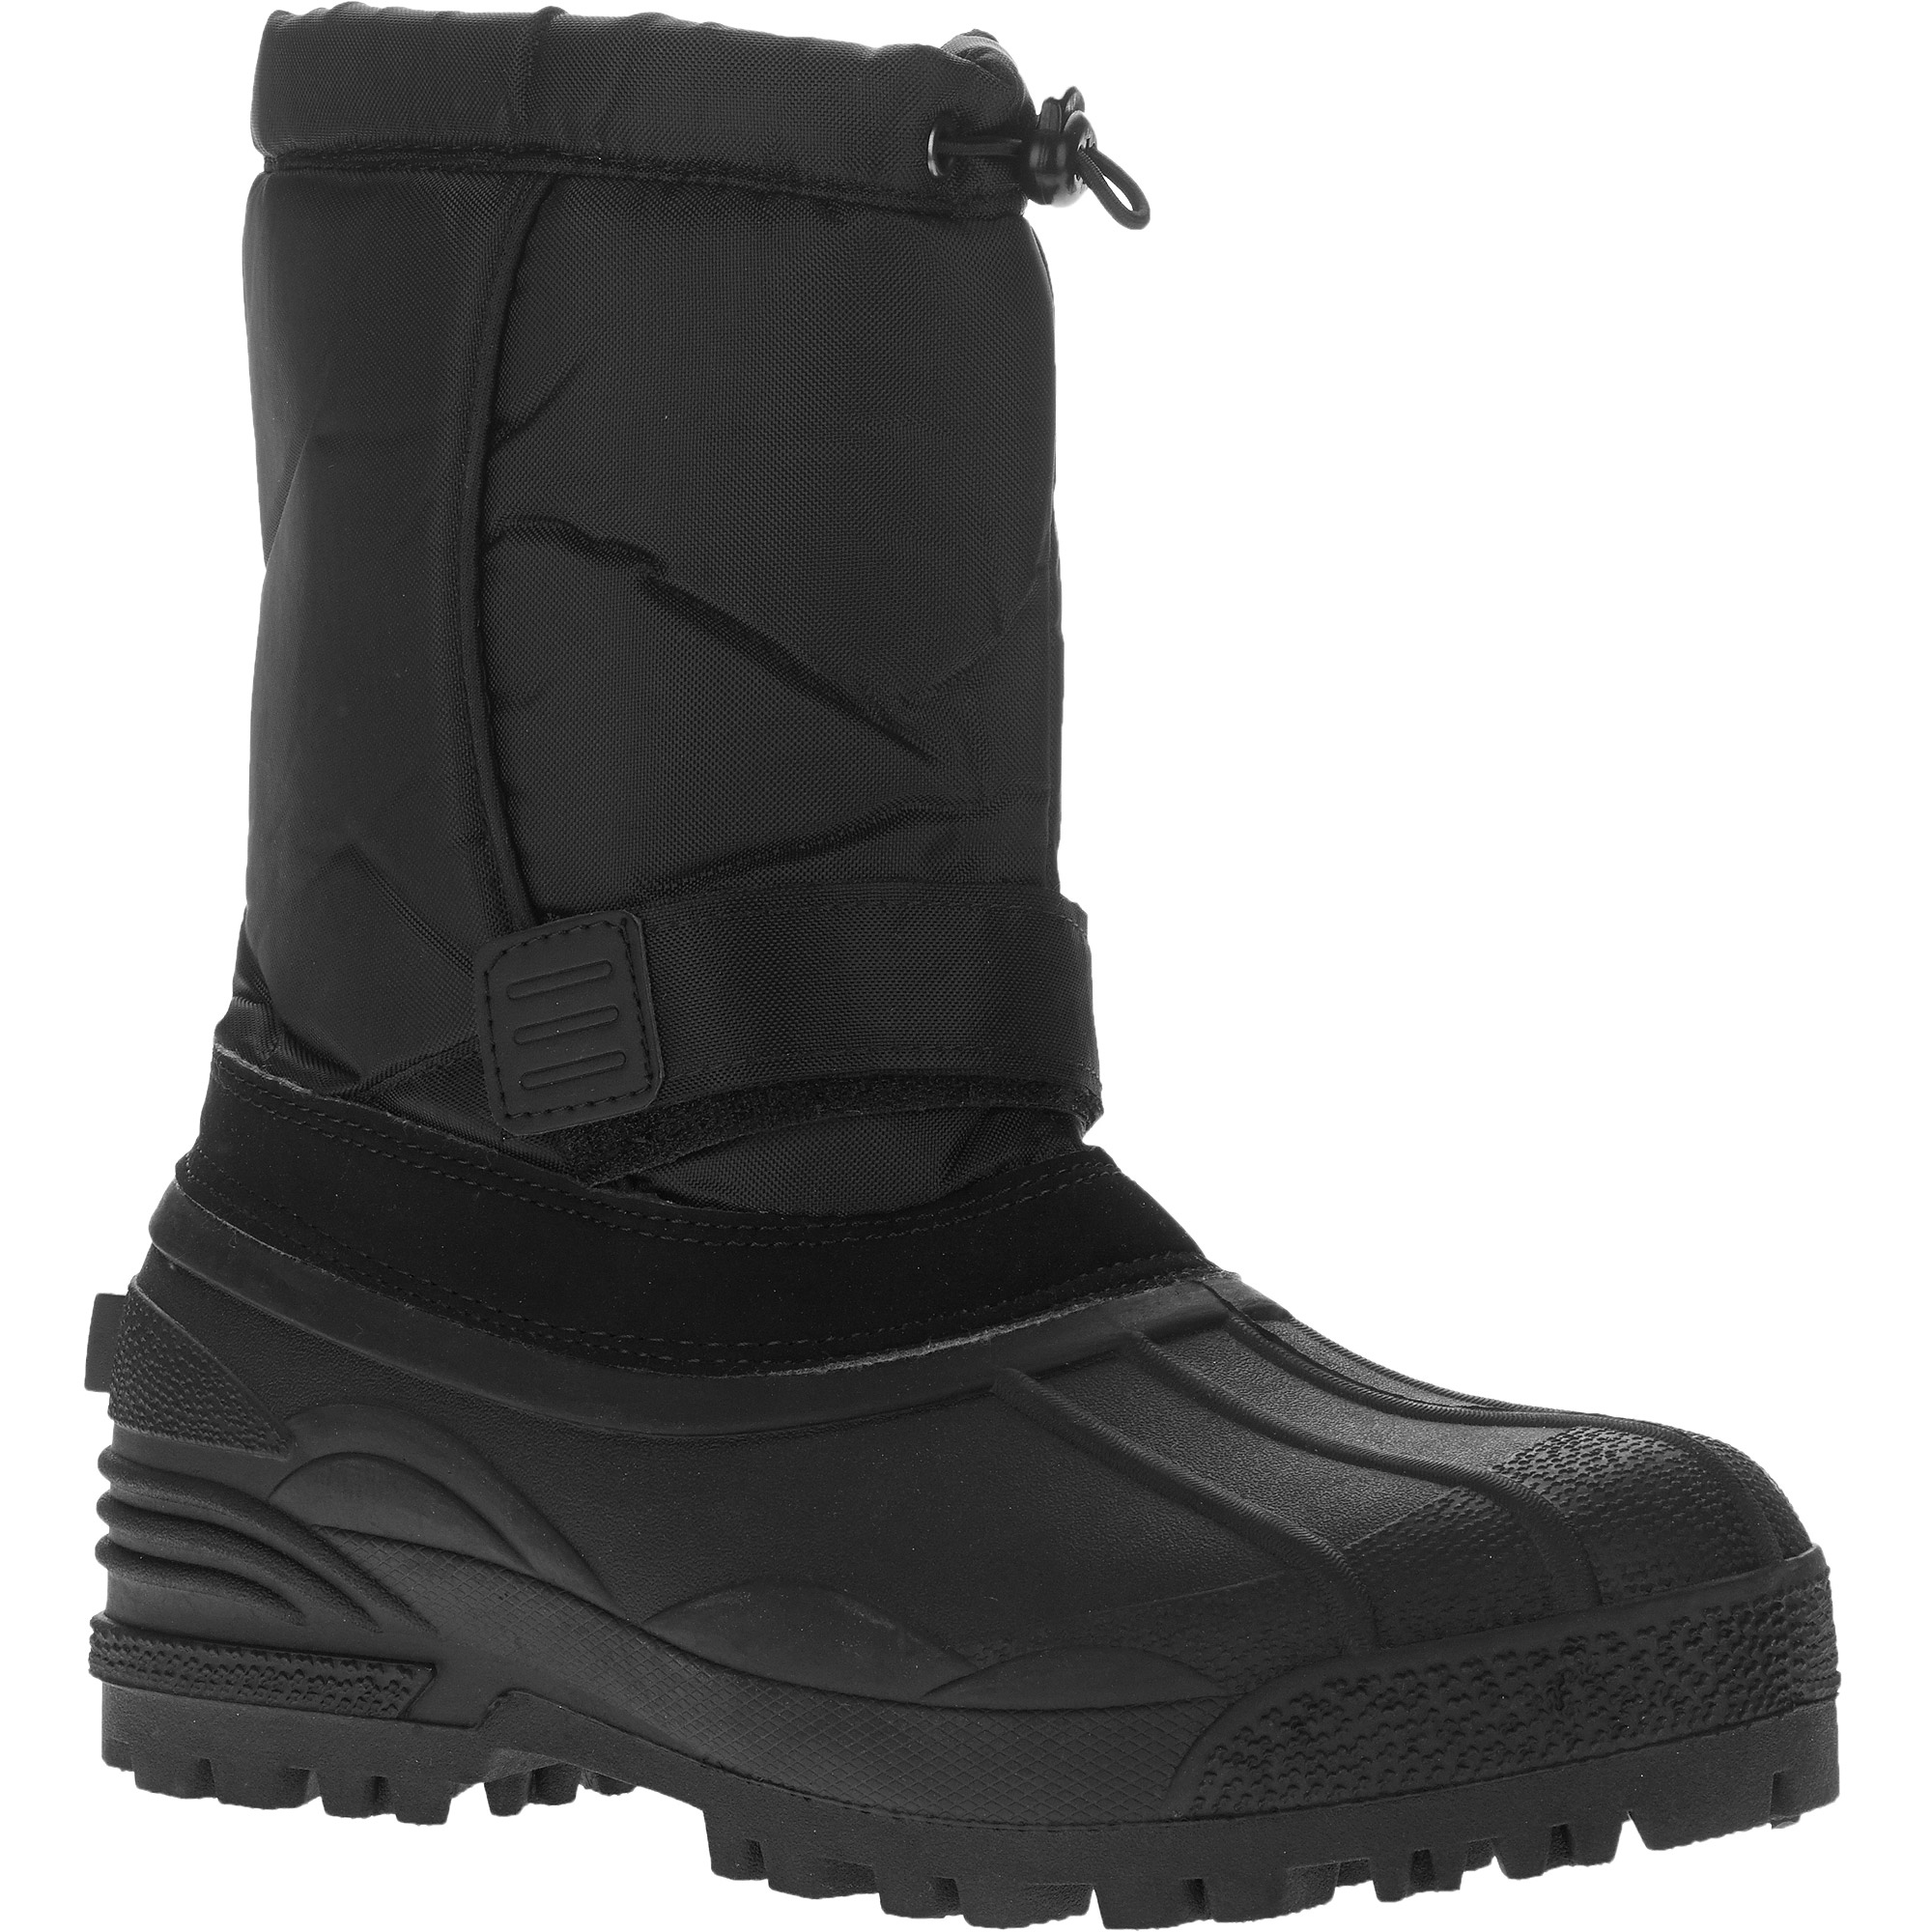 Waterproof Mens Boots Cq2NMjPm